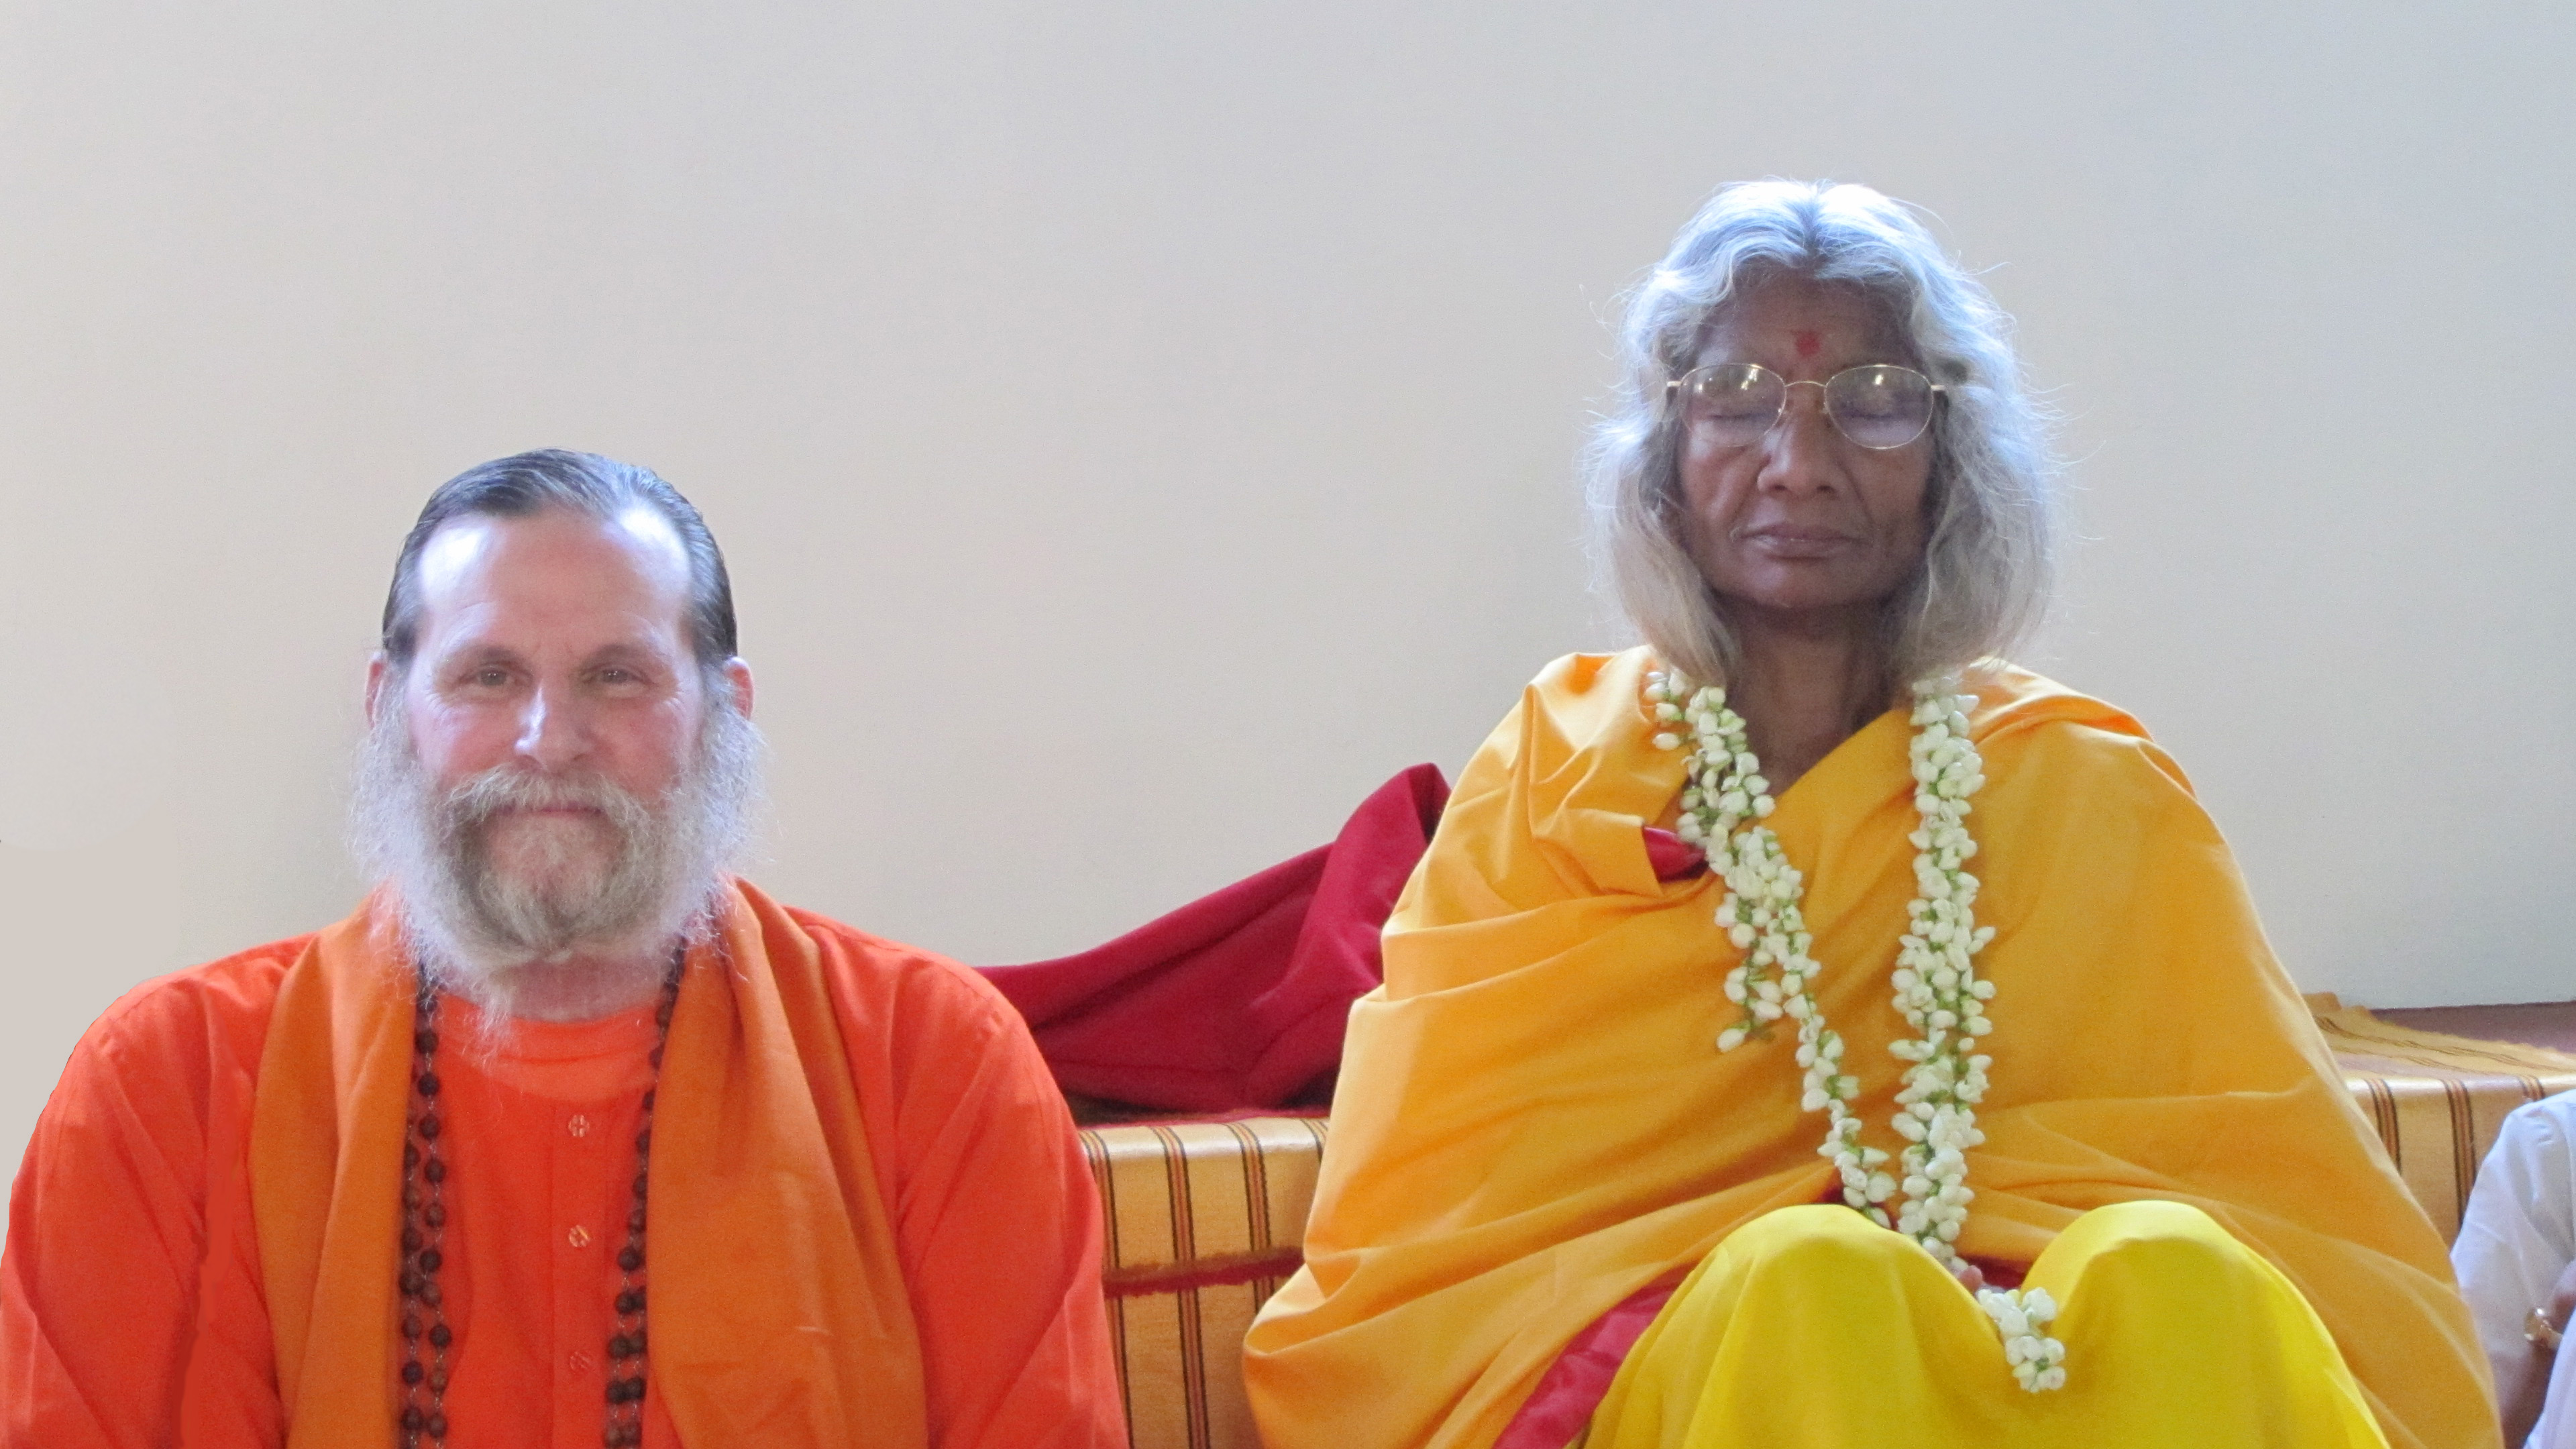 Shree-Maa-and-Swamiji-with-Red-Towel